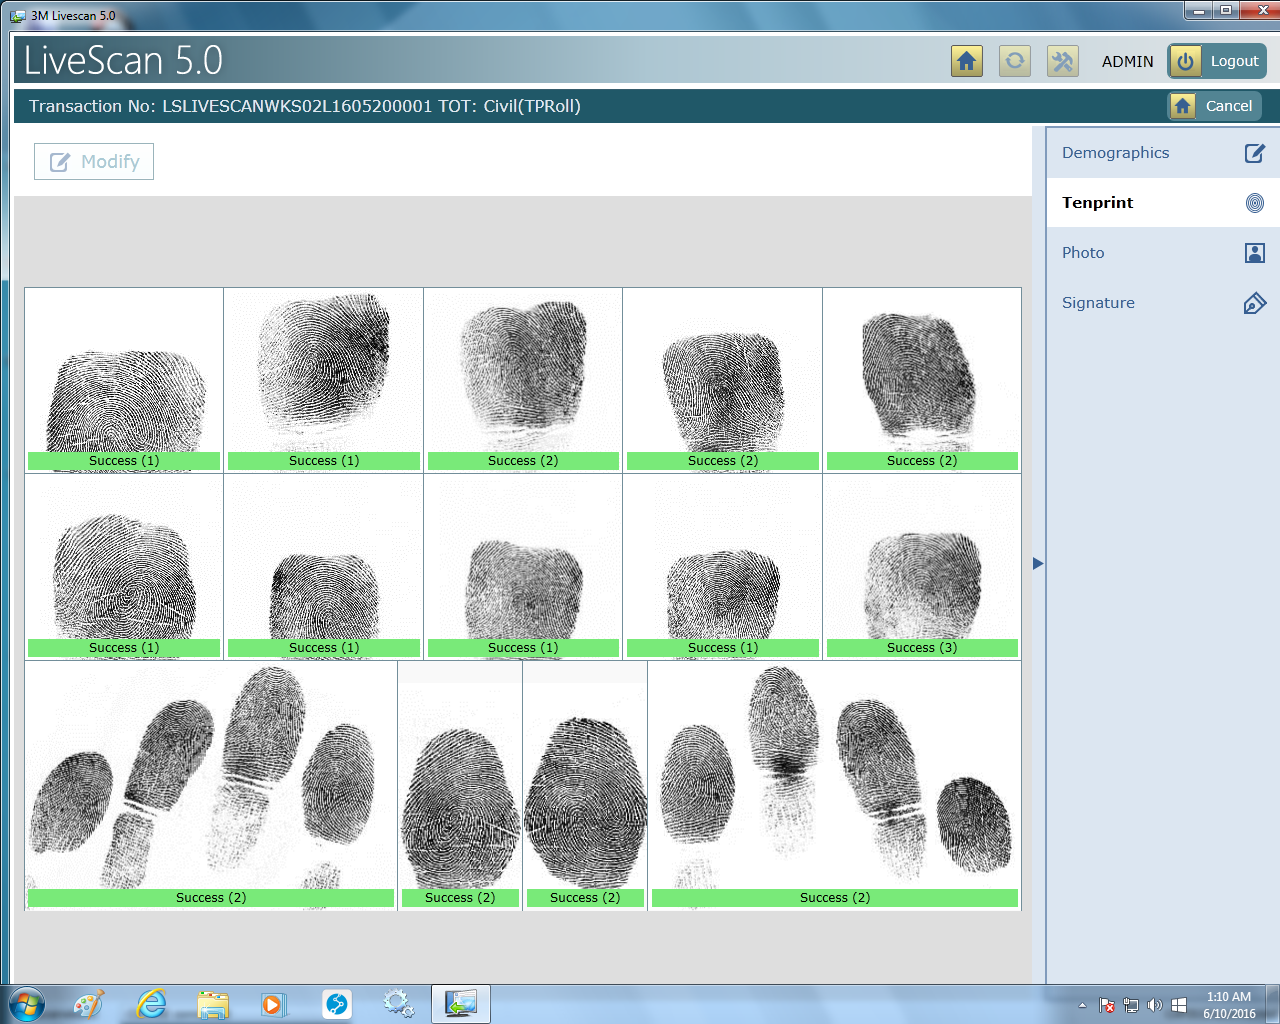 3M Releases New LiveScan 5.0 Software